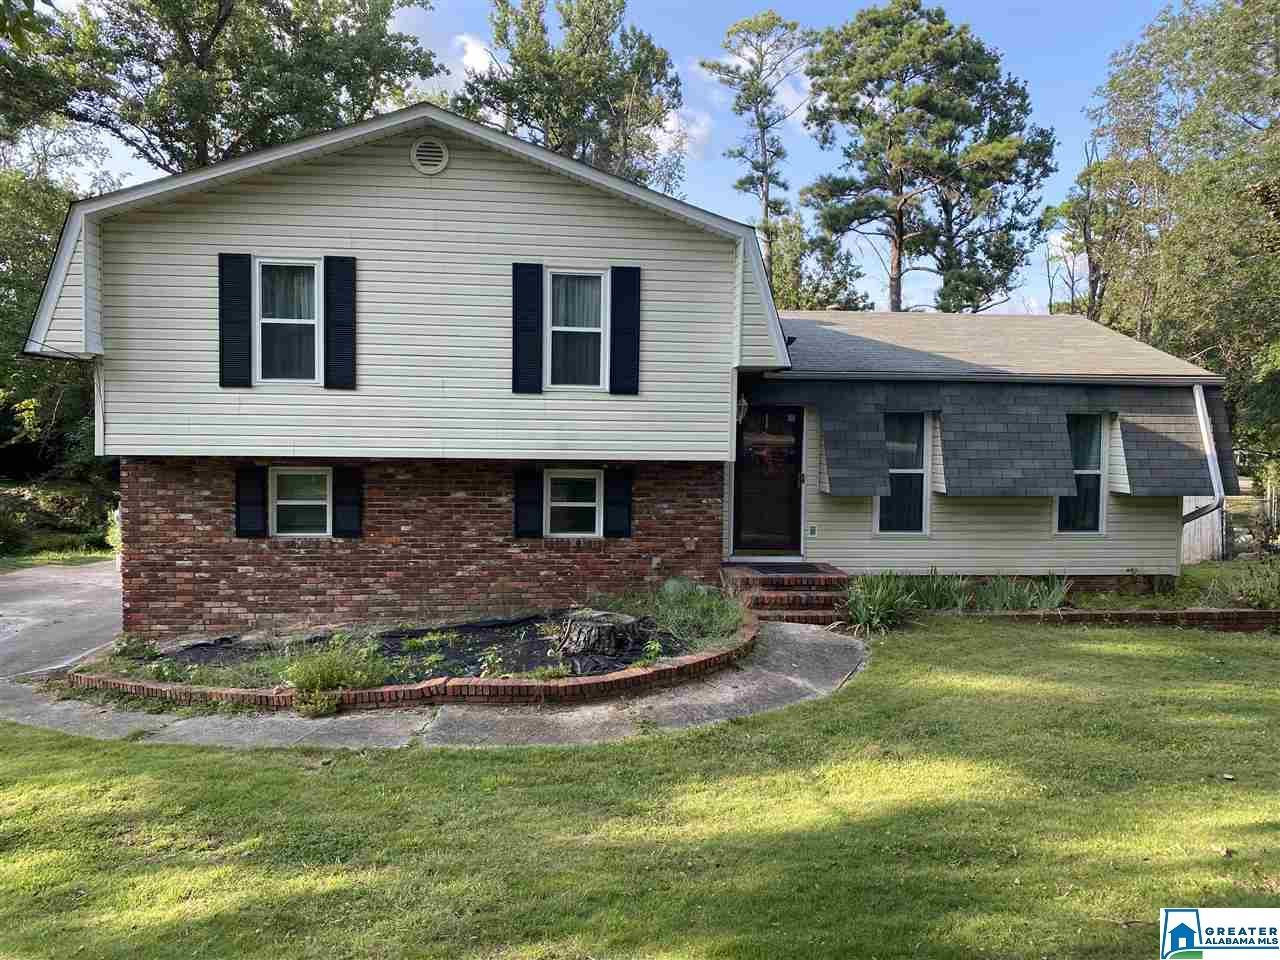 2257 CHAPEL RD, Hoover, AL 35226 - MLS#: 895298